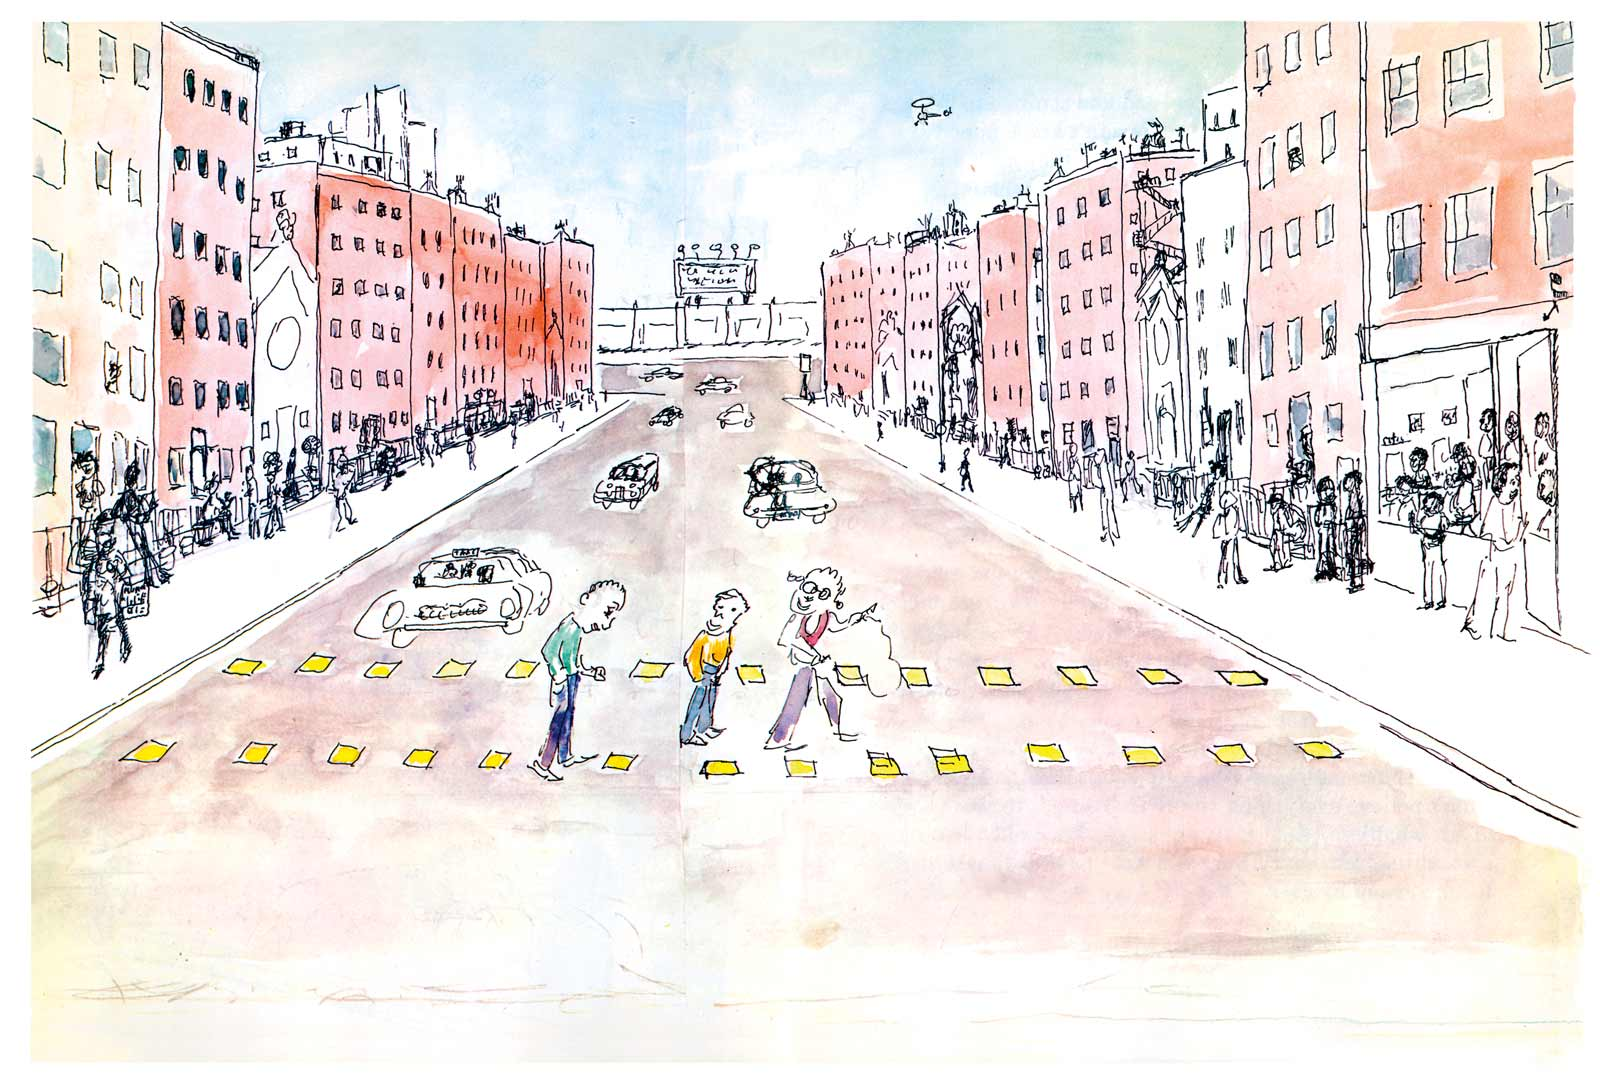 Illustration by Yoran Cazac, from James Baldwin and Yoran Cazac's Little Man, Little Man: A Story of Childhood, 2018